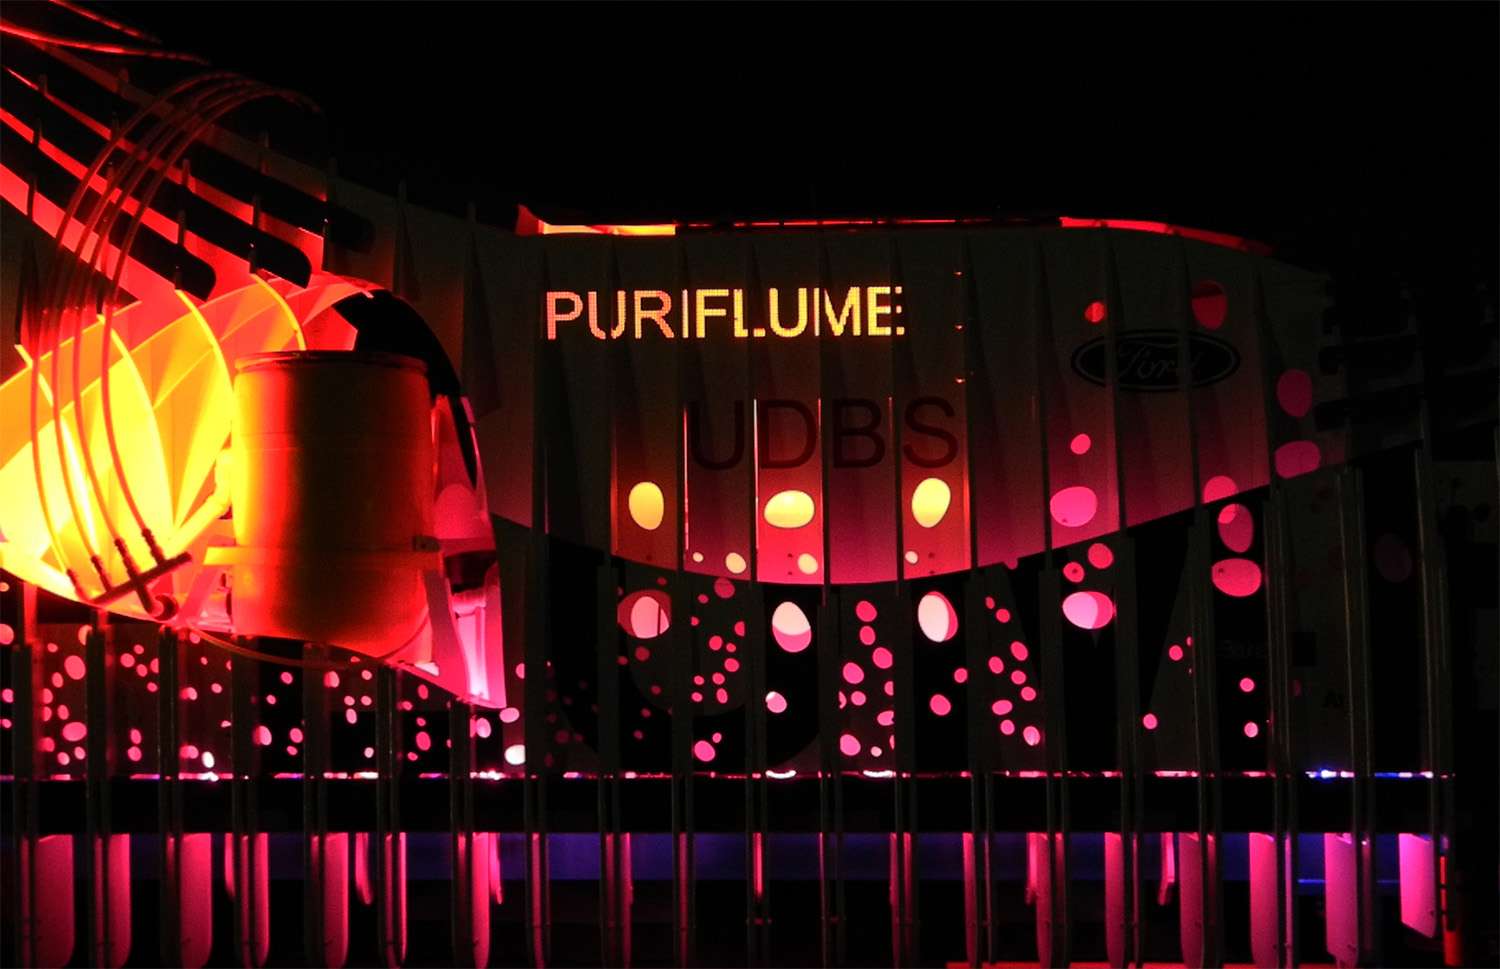 Lighting on educational side with PURIFLUME signage.